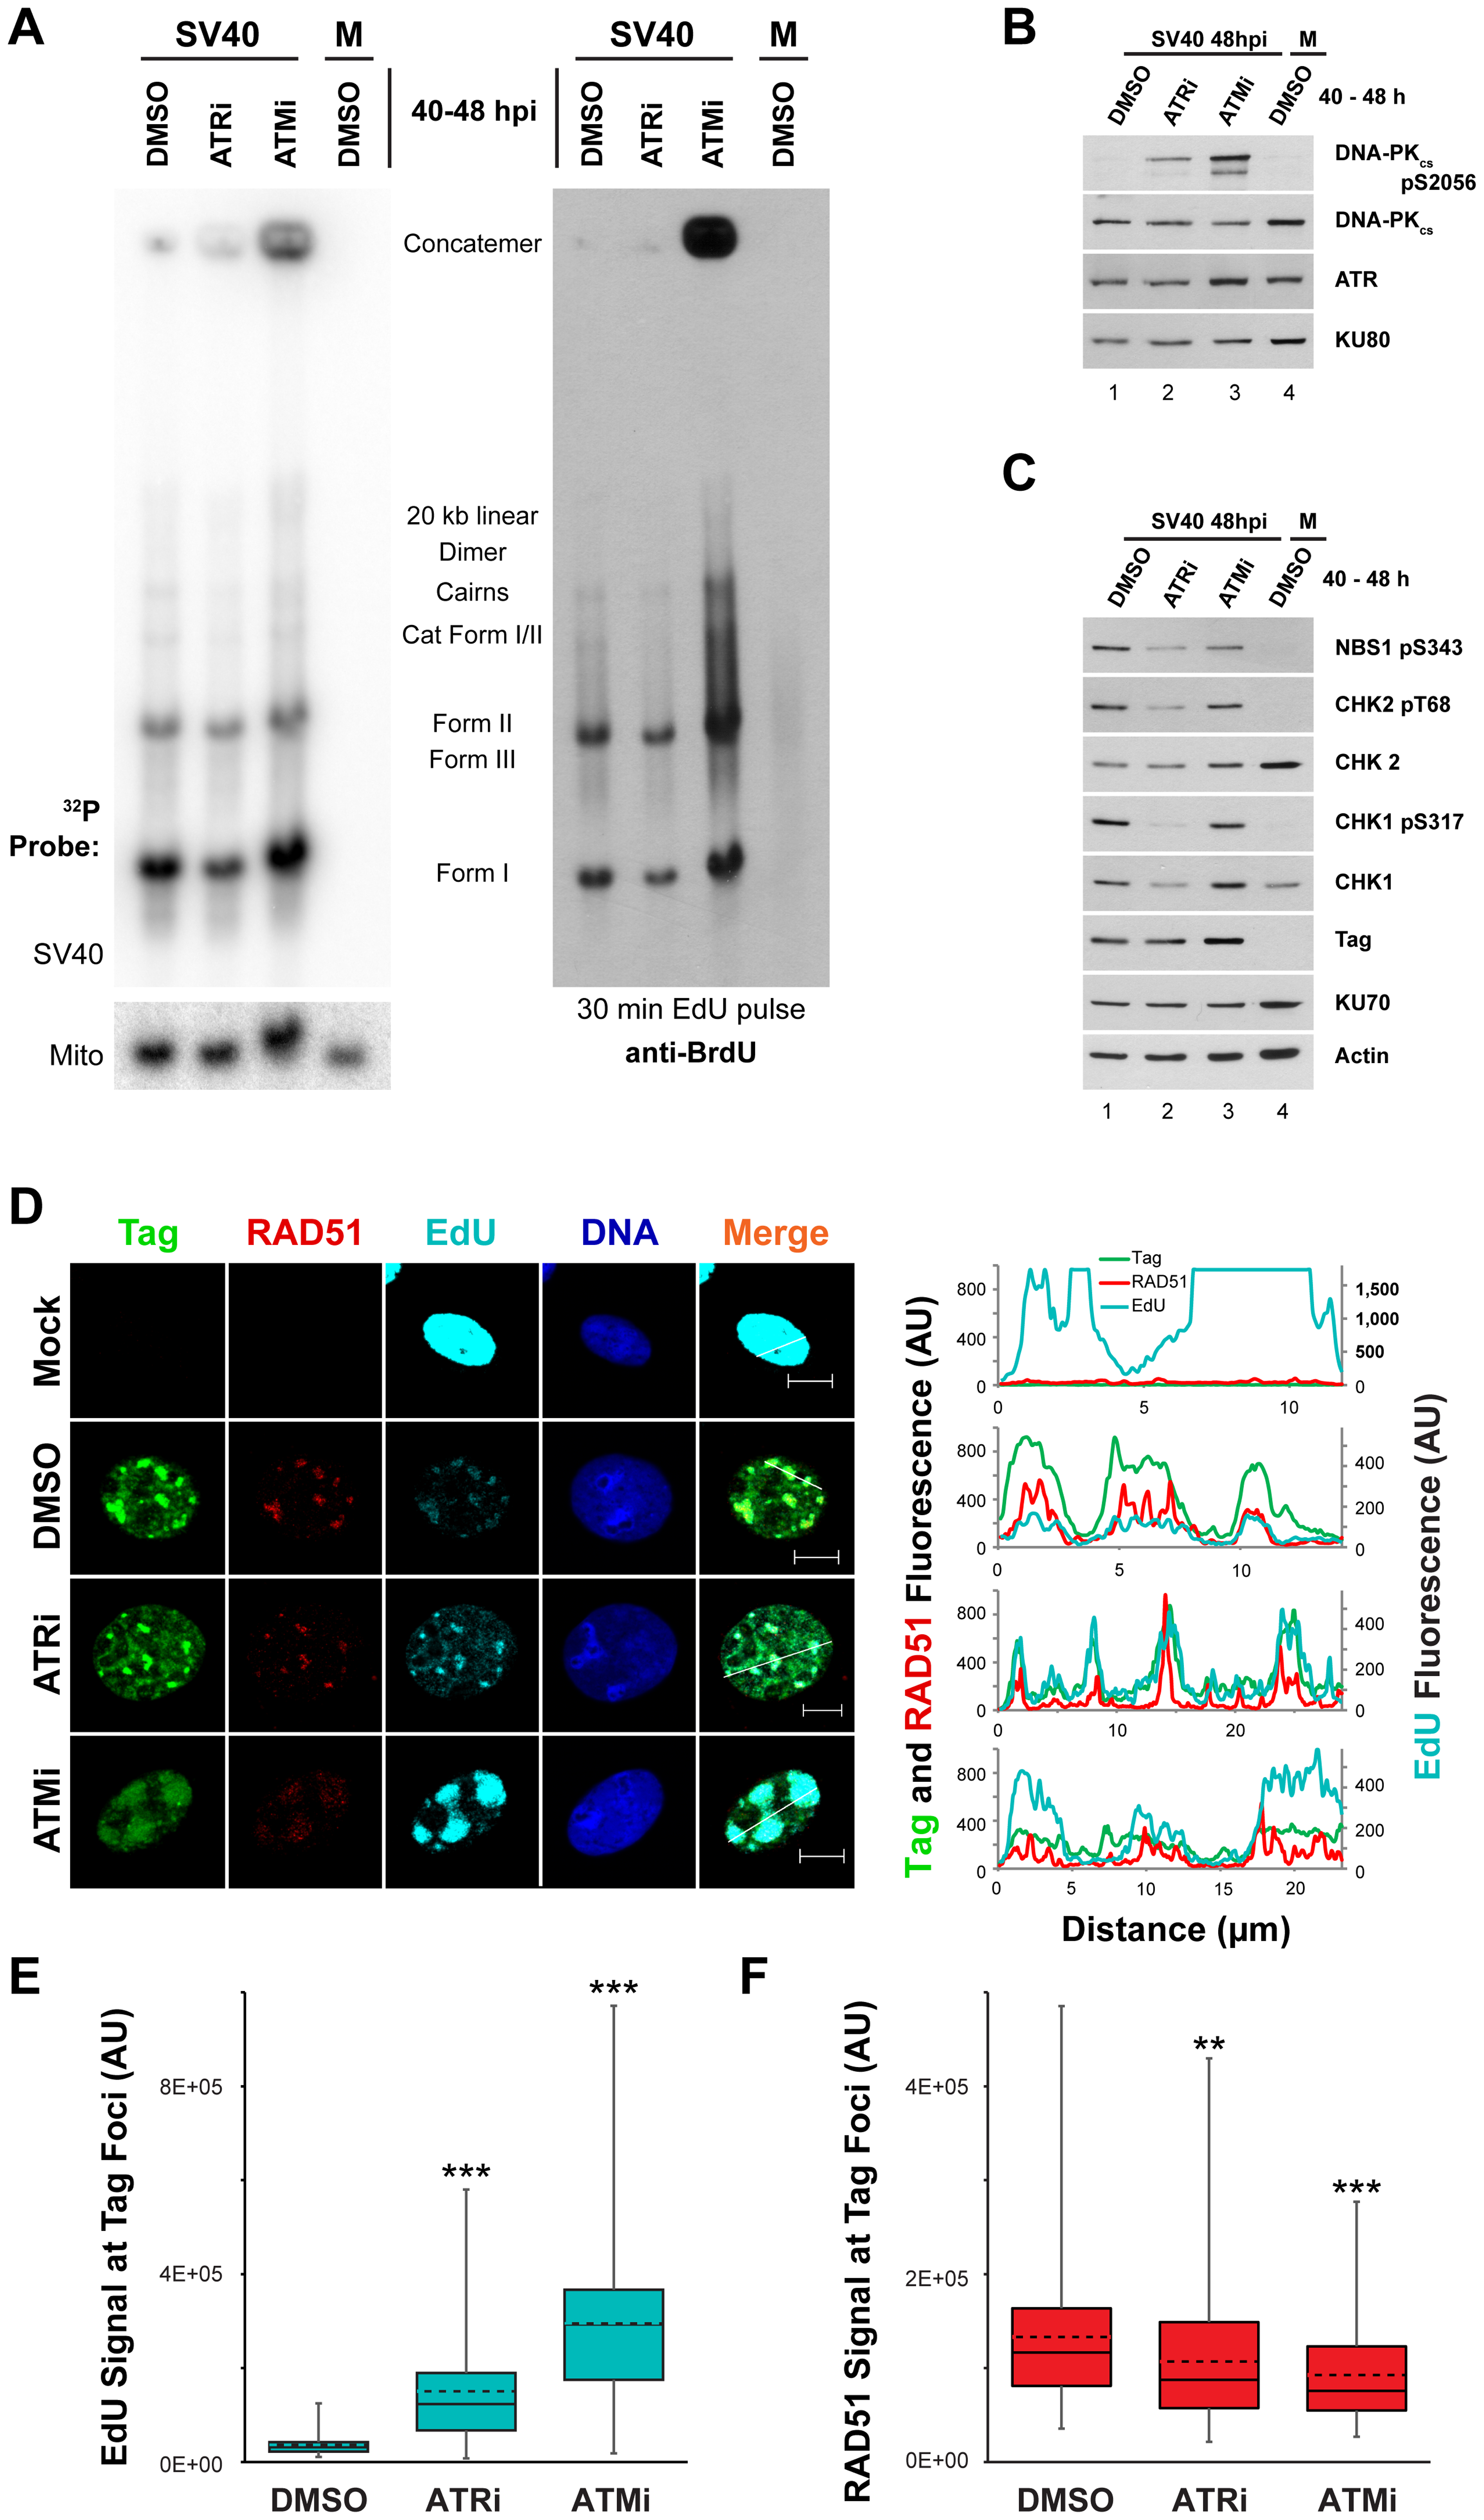 ATM or ATR inhibition does not affect incorporation of nucleotides into SV40 DNA.